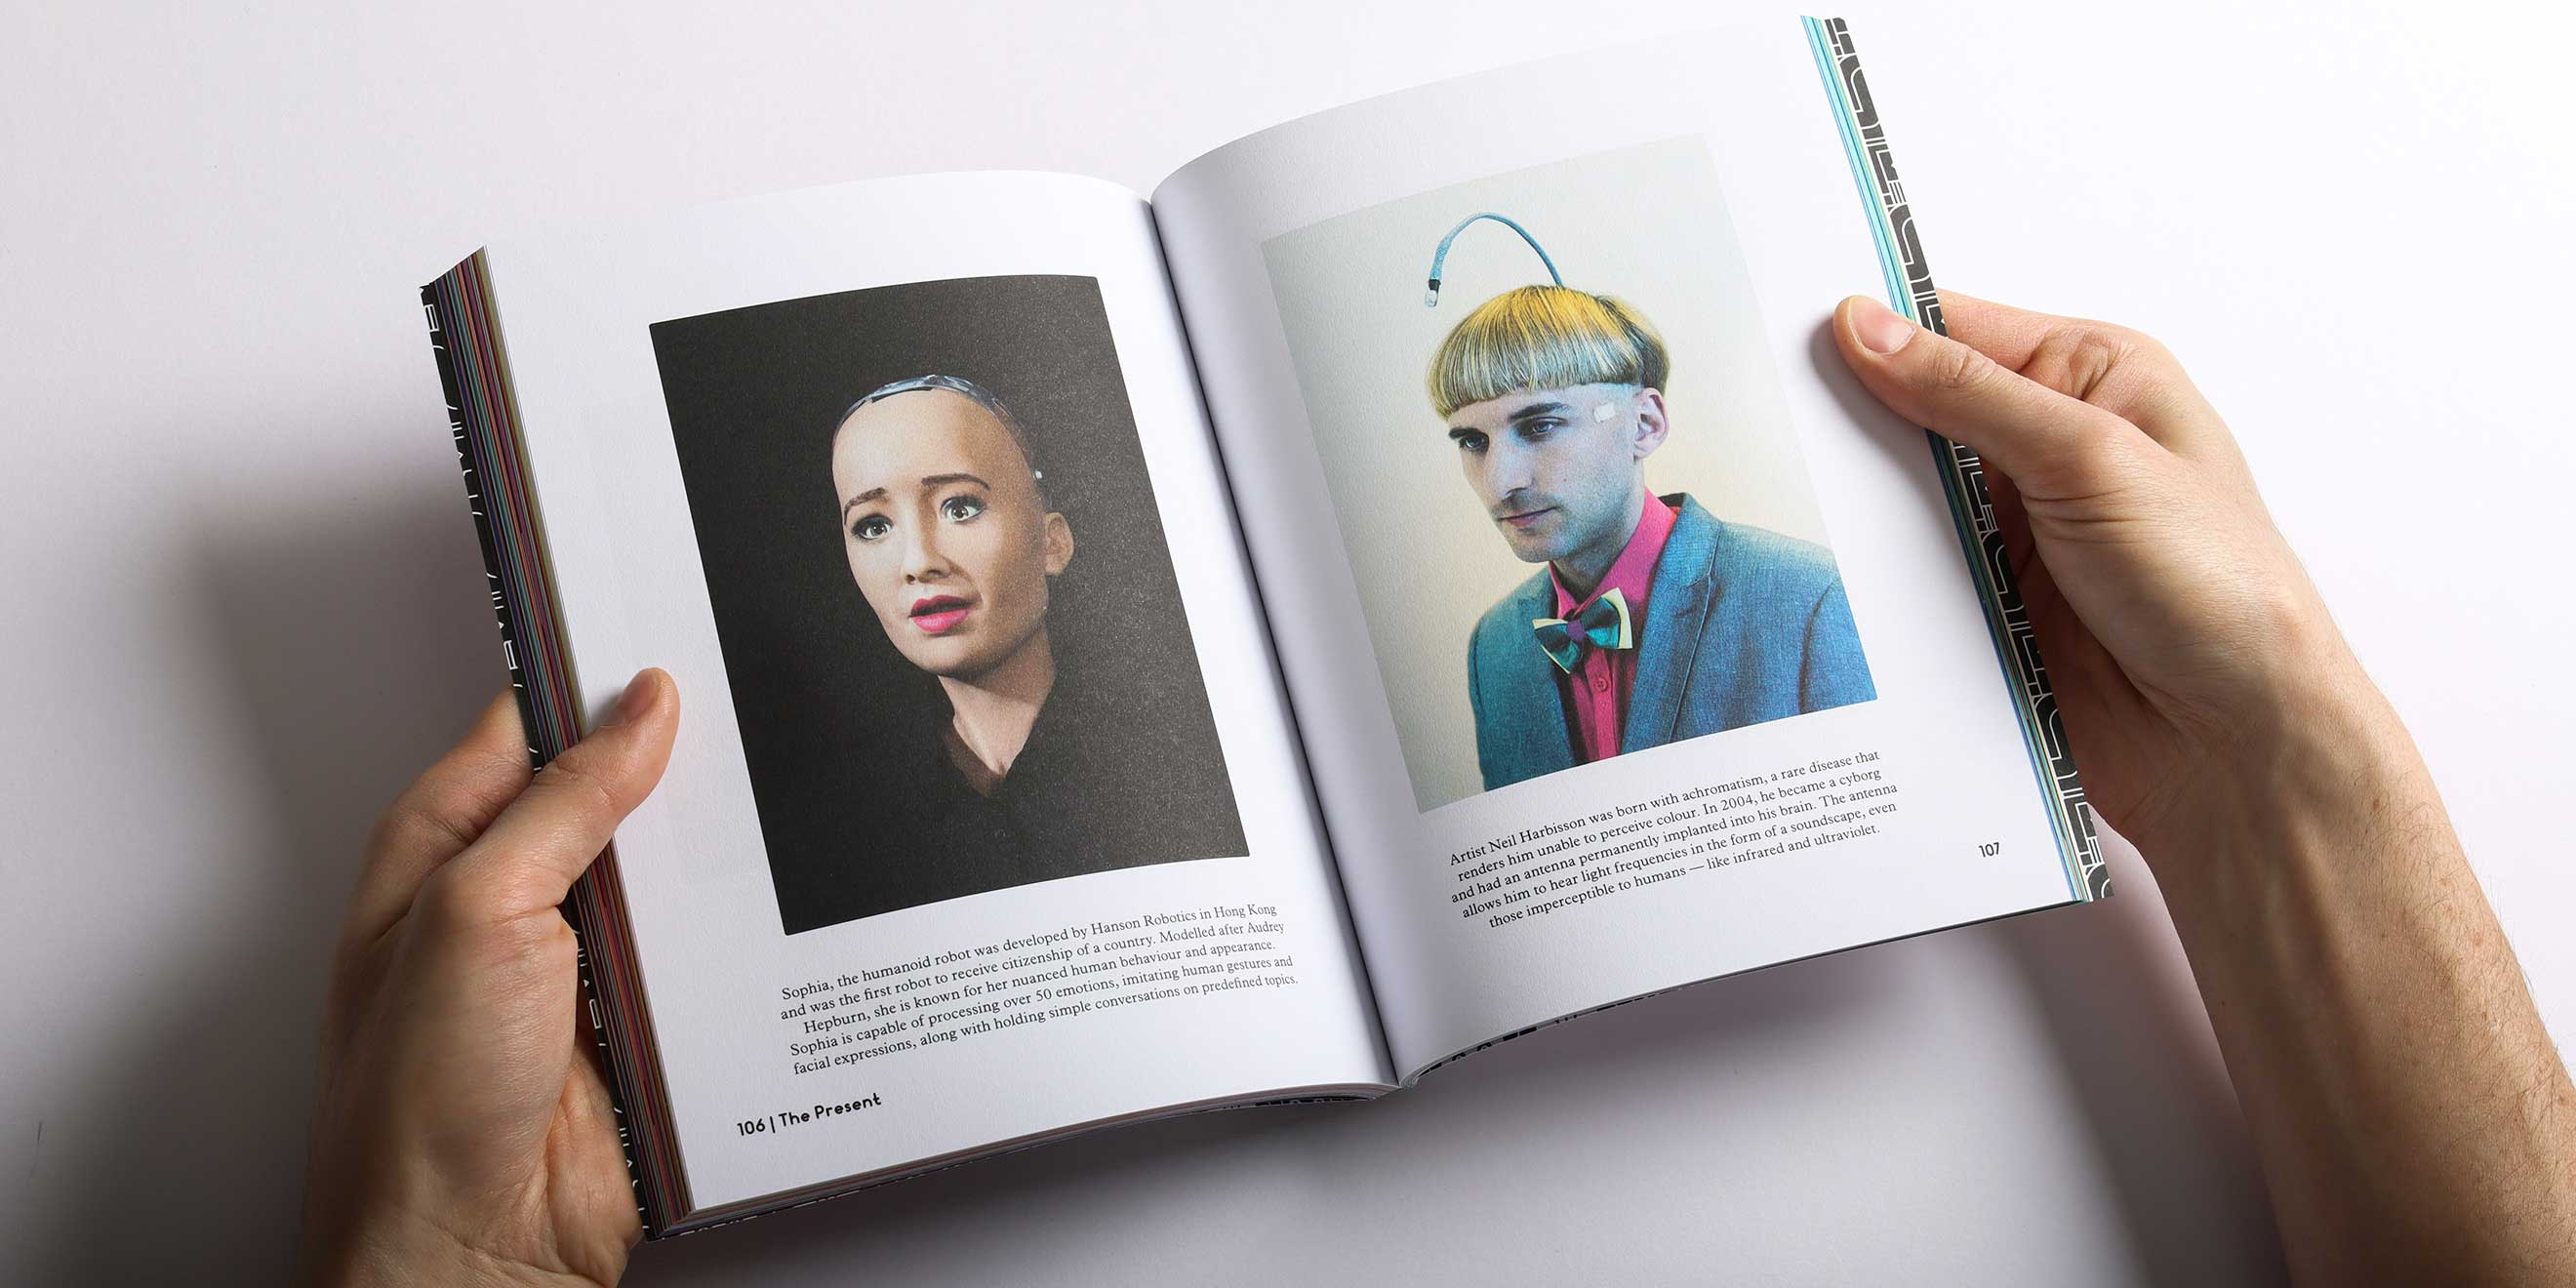 Transhumanism photo spread from Weapons of Reason magazine: The AI issue